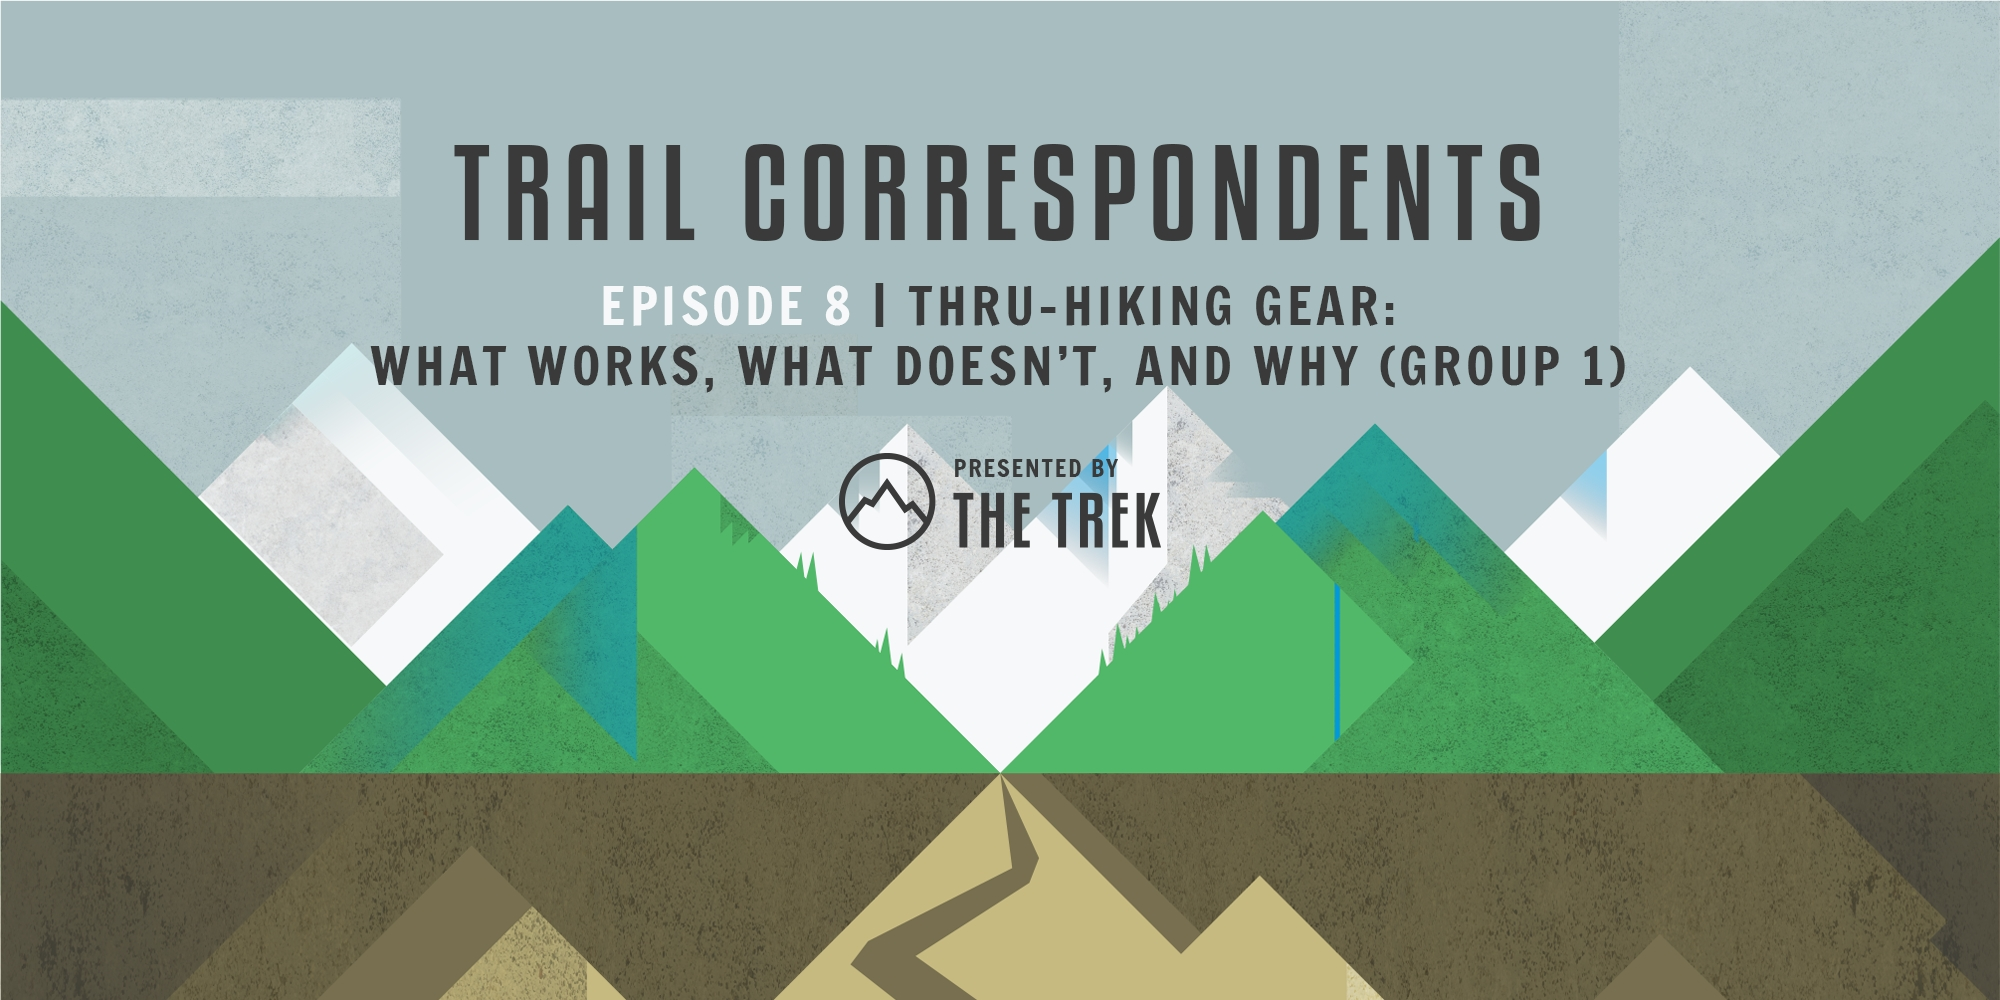 Trail Correspondents Episode #8 | Thru-Hiking Gear: What Works, What Doesn't, and Why (Group 1) - The Trek